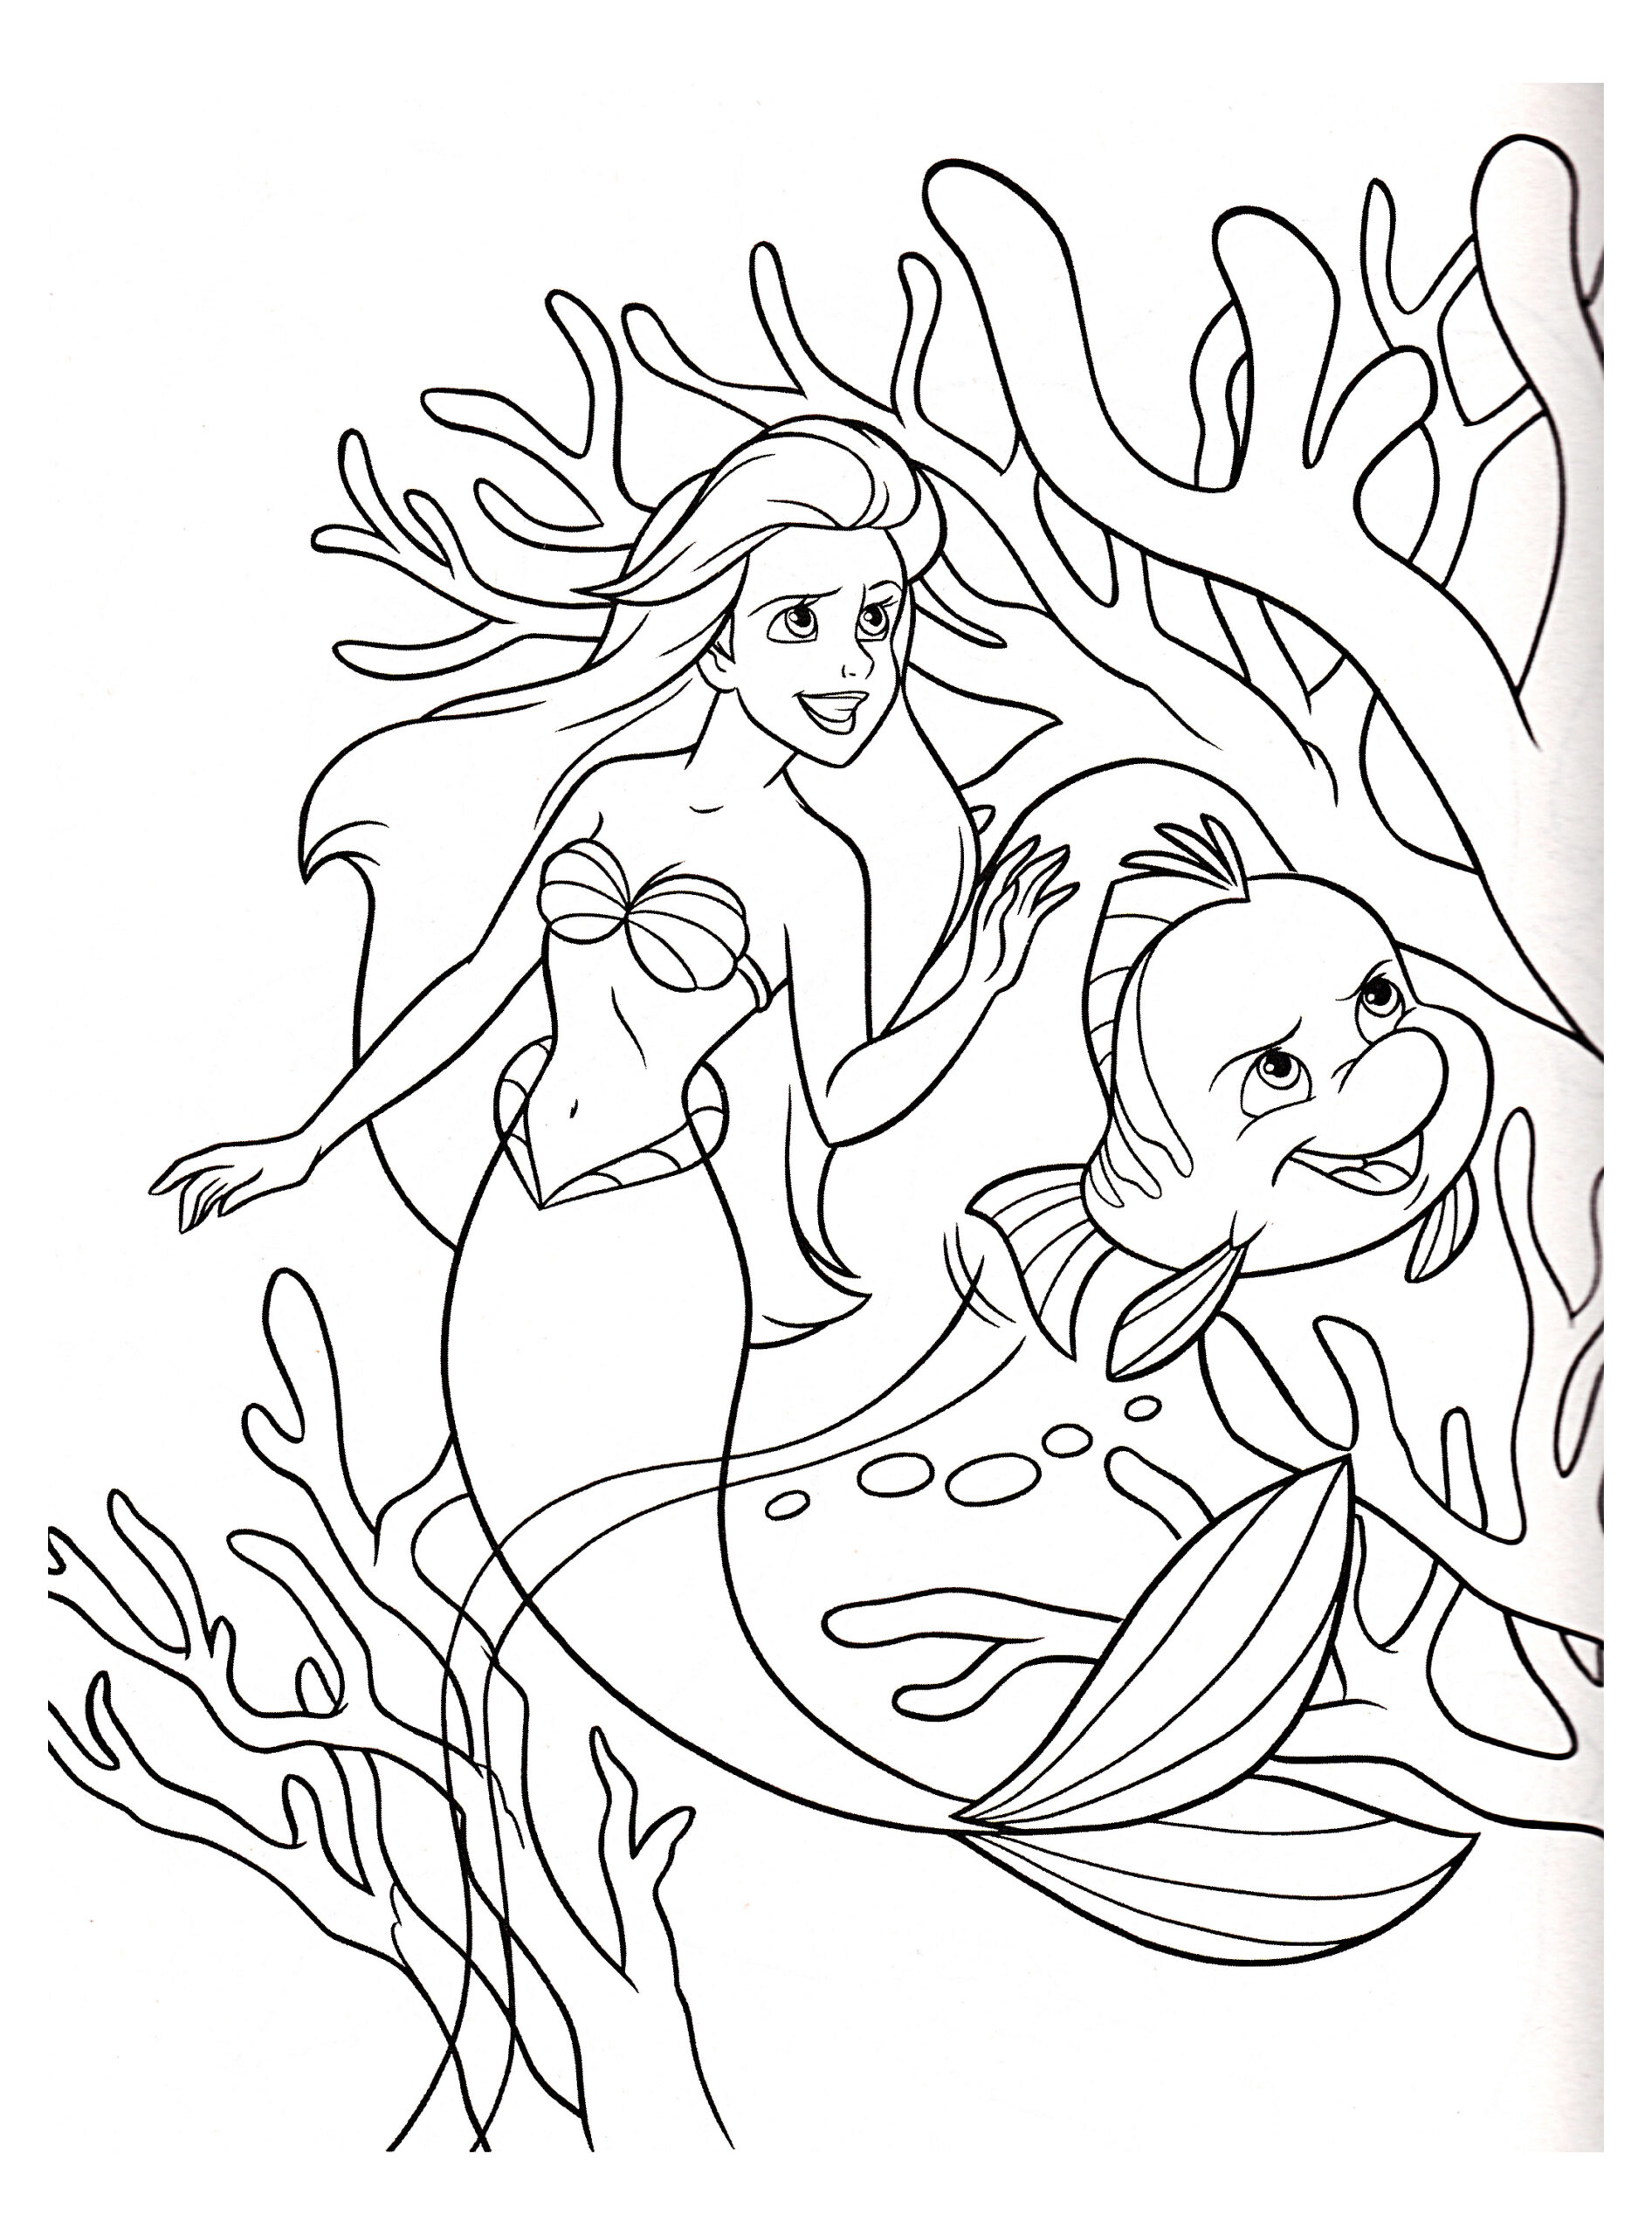 the little mermaid to color for children kids coloring bubble prints small leaf coloring pages Little Mermaid Coloring Page